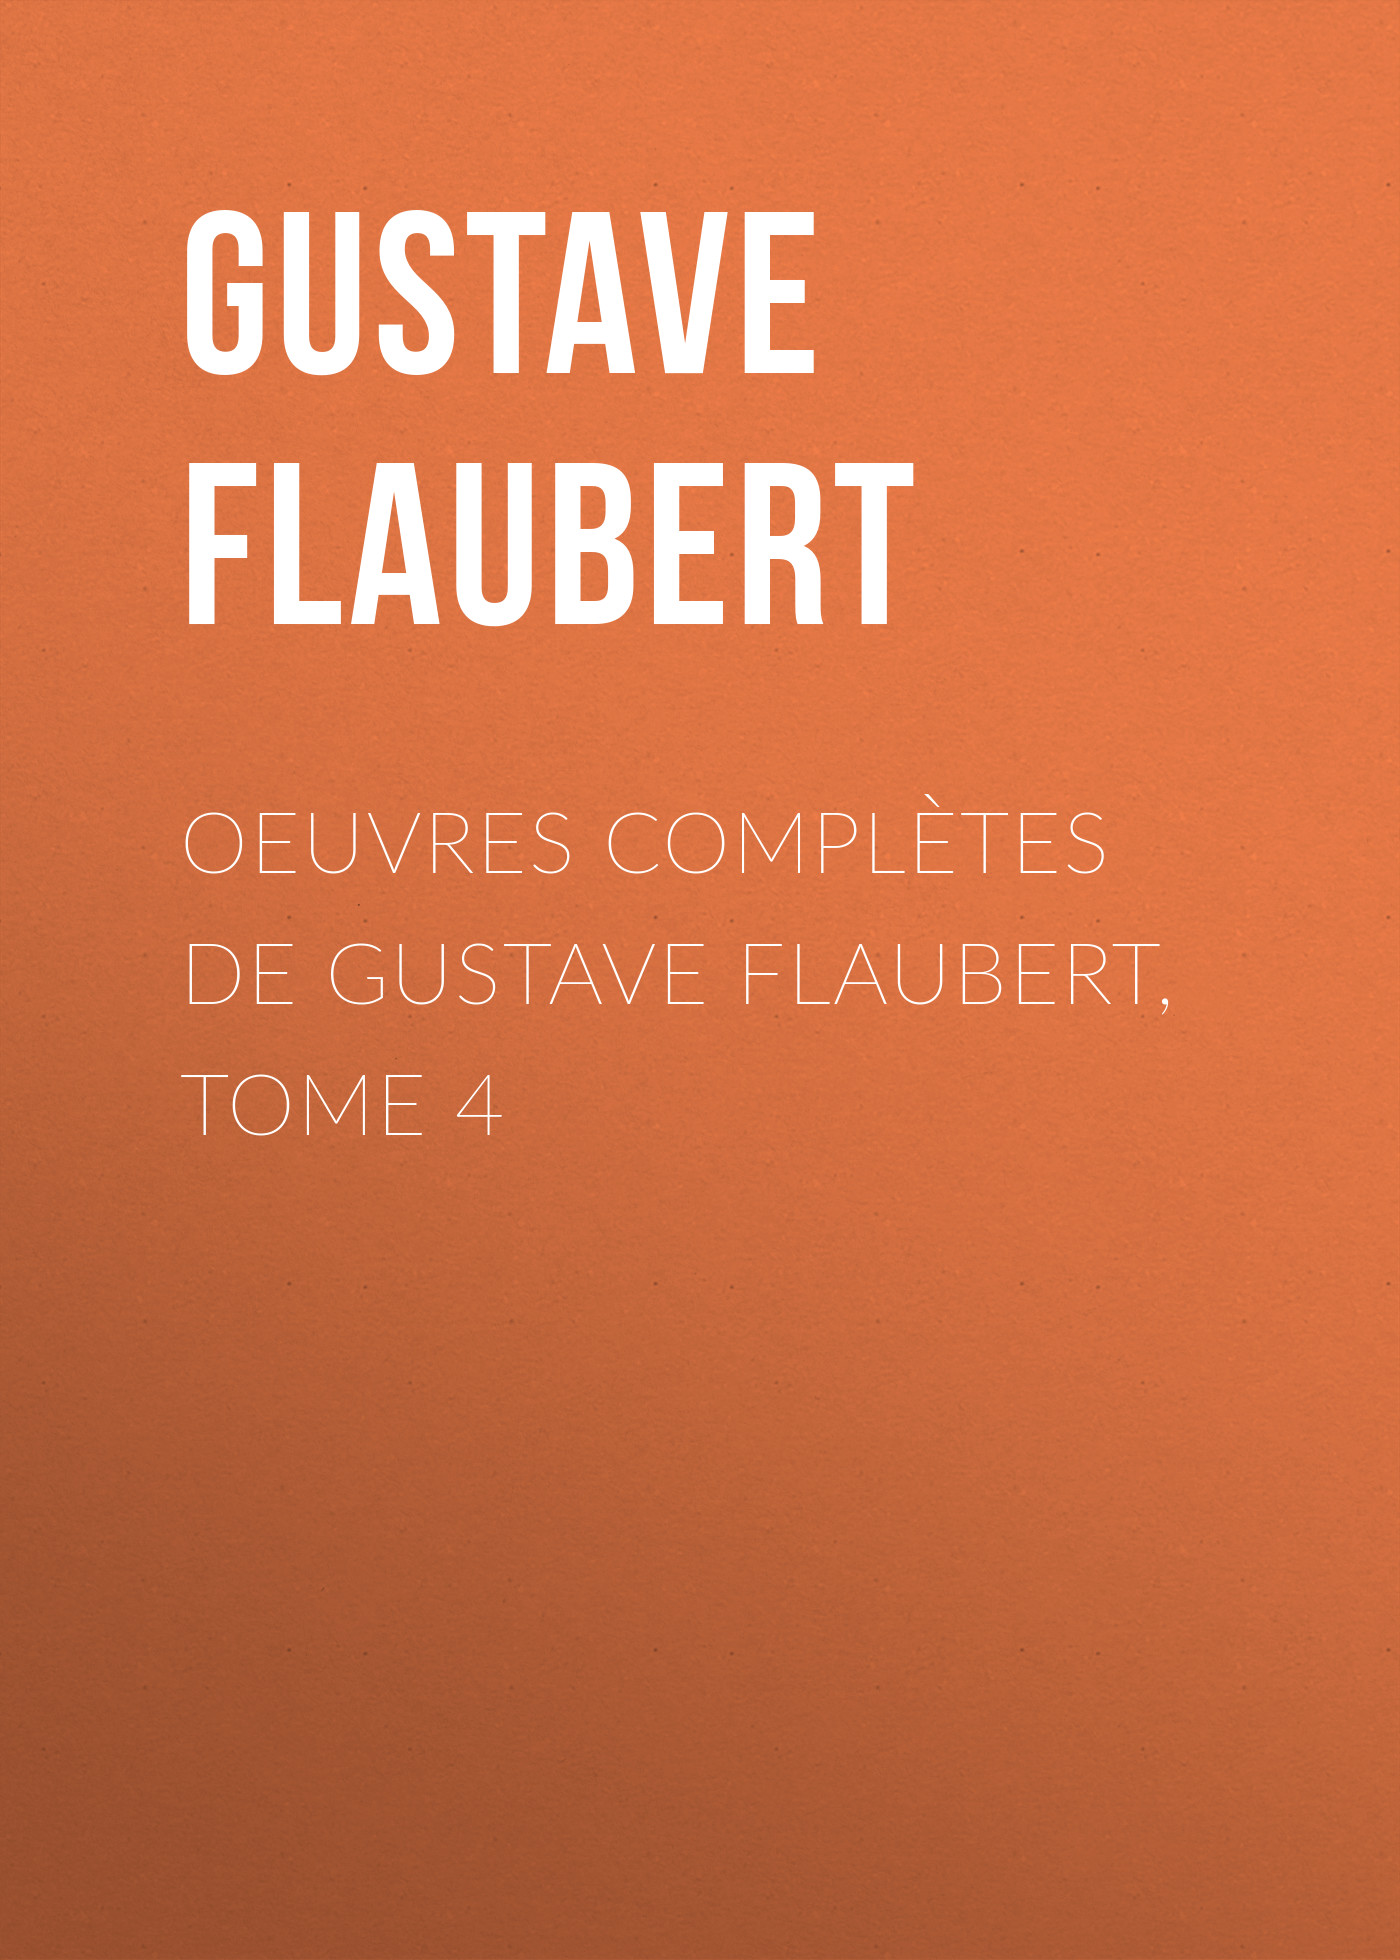 Gustave Flaubert OEuvres complètes de Gustave Flaubert, tome 4 цена и фото